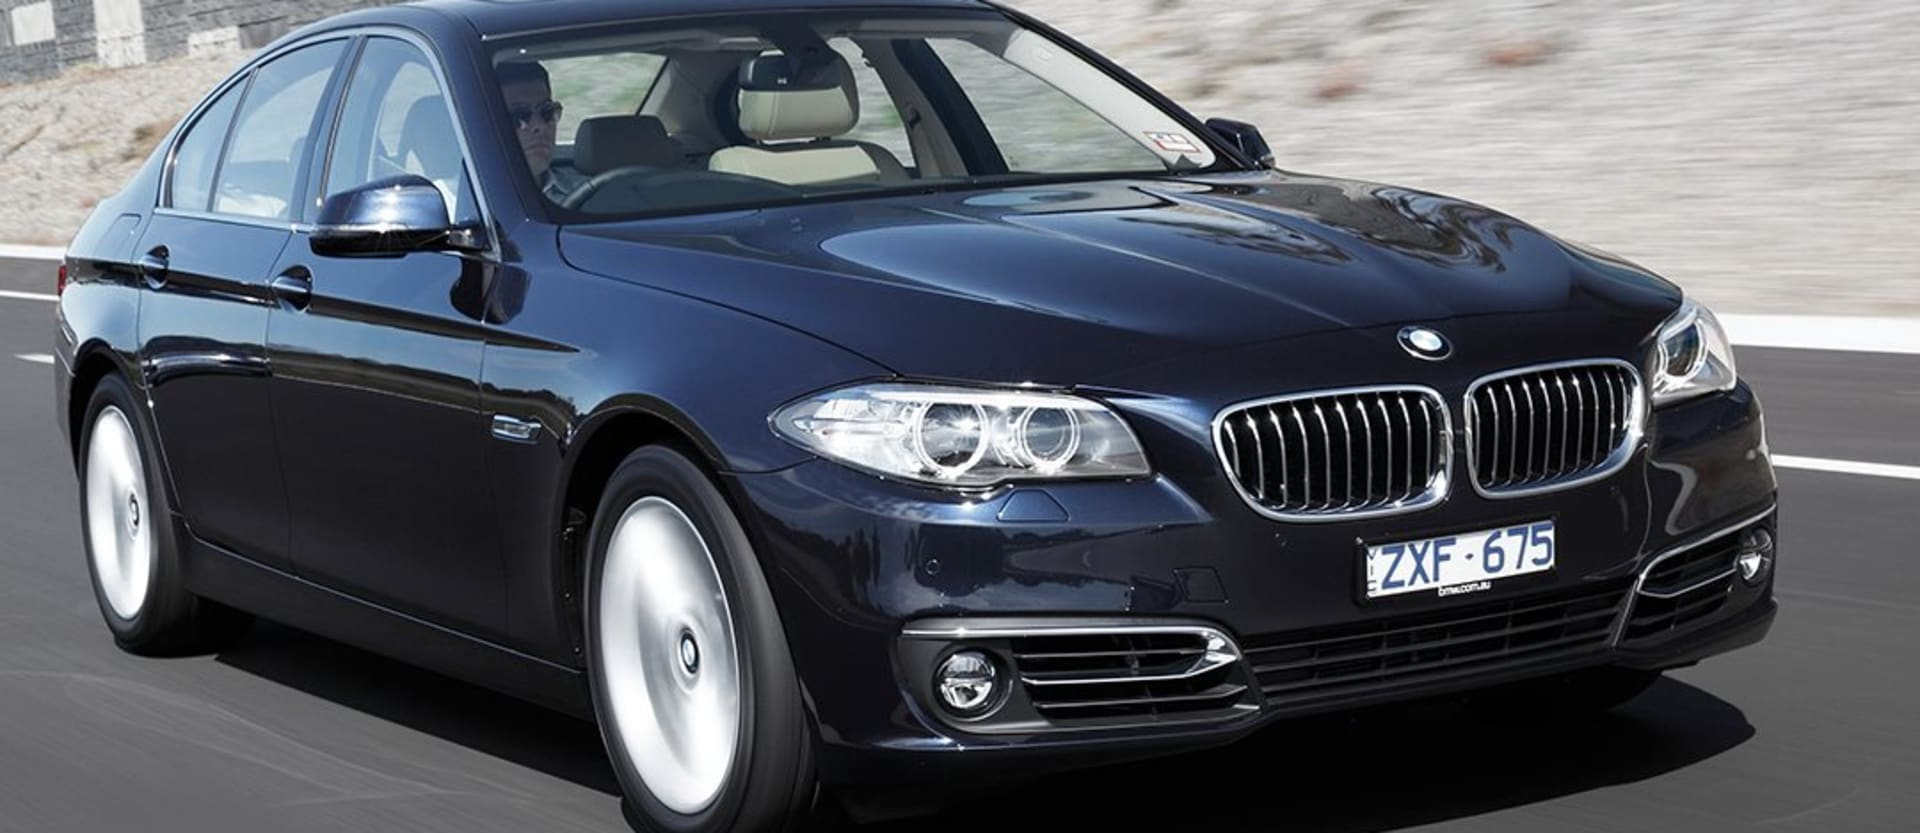 BMW 5 Series Front Driving Jpg